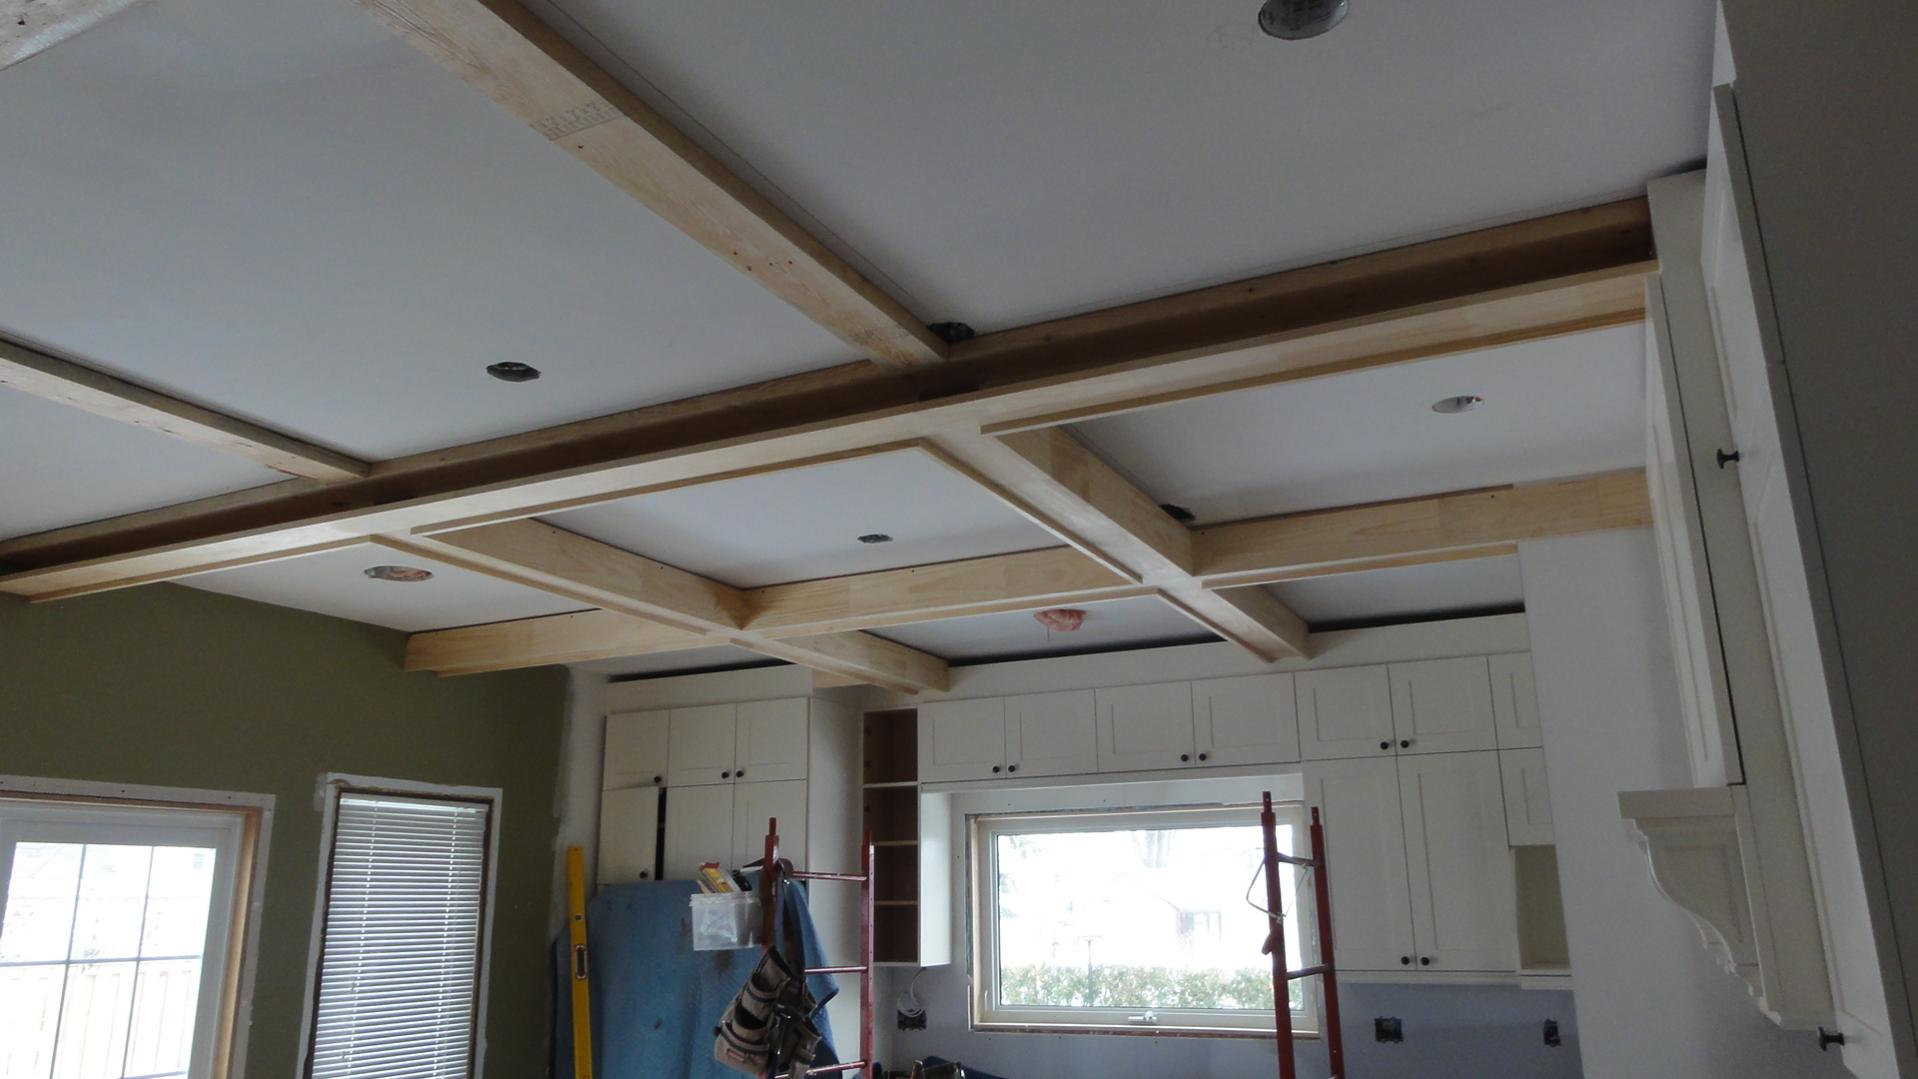 Coffered Ceiling in progress for kitchen ceiling plus awning window